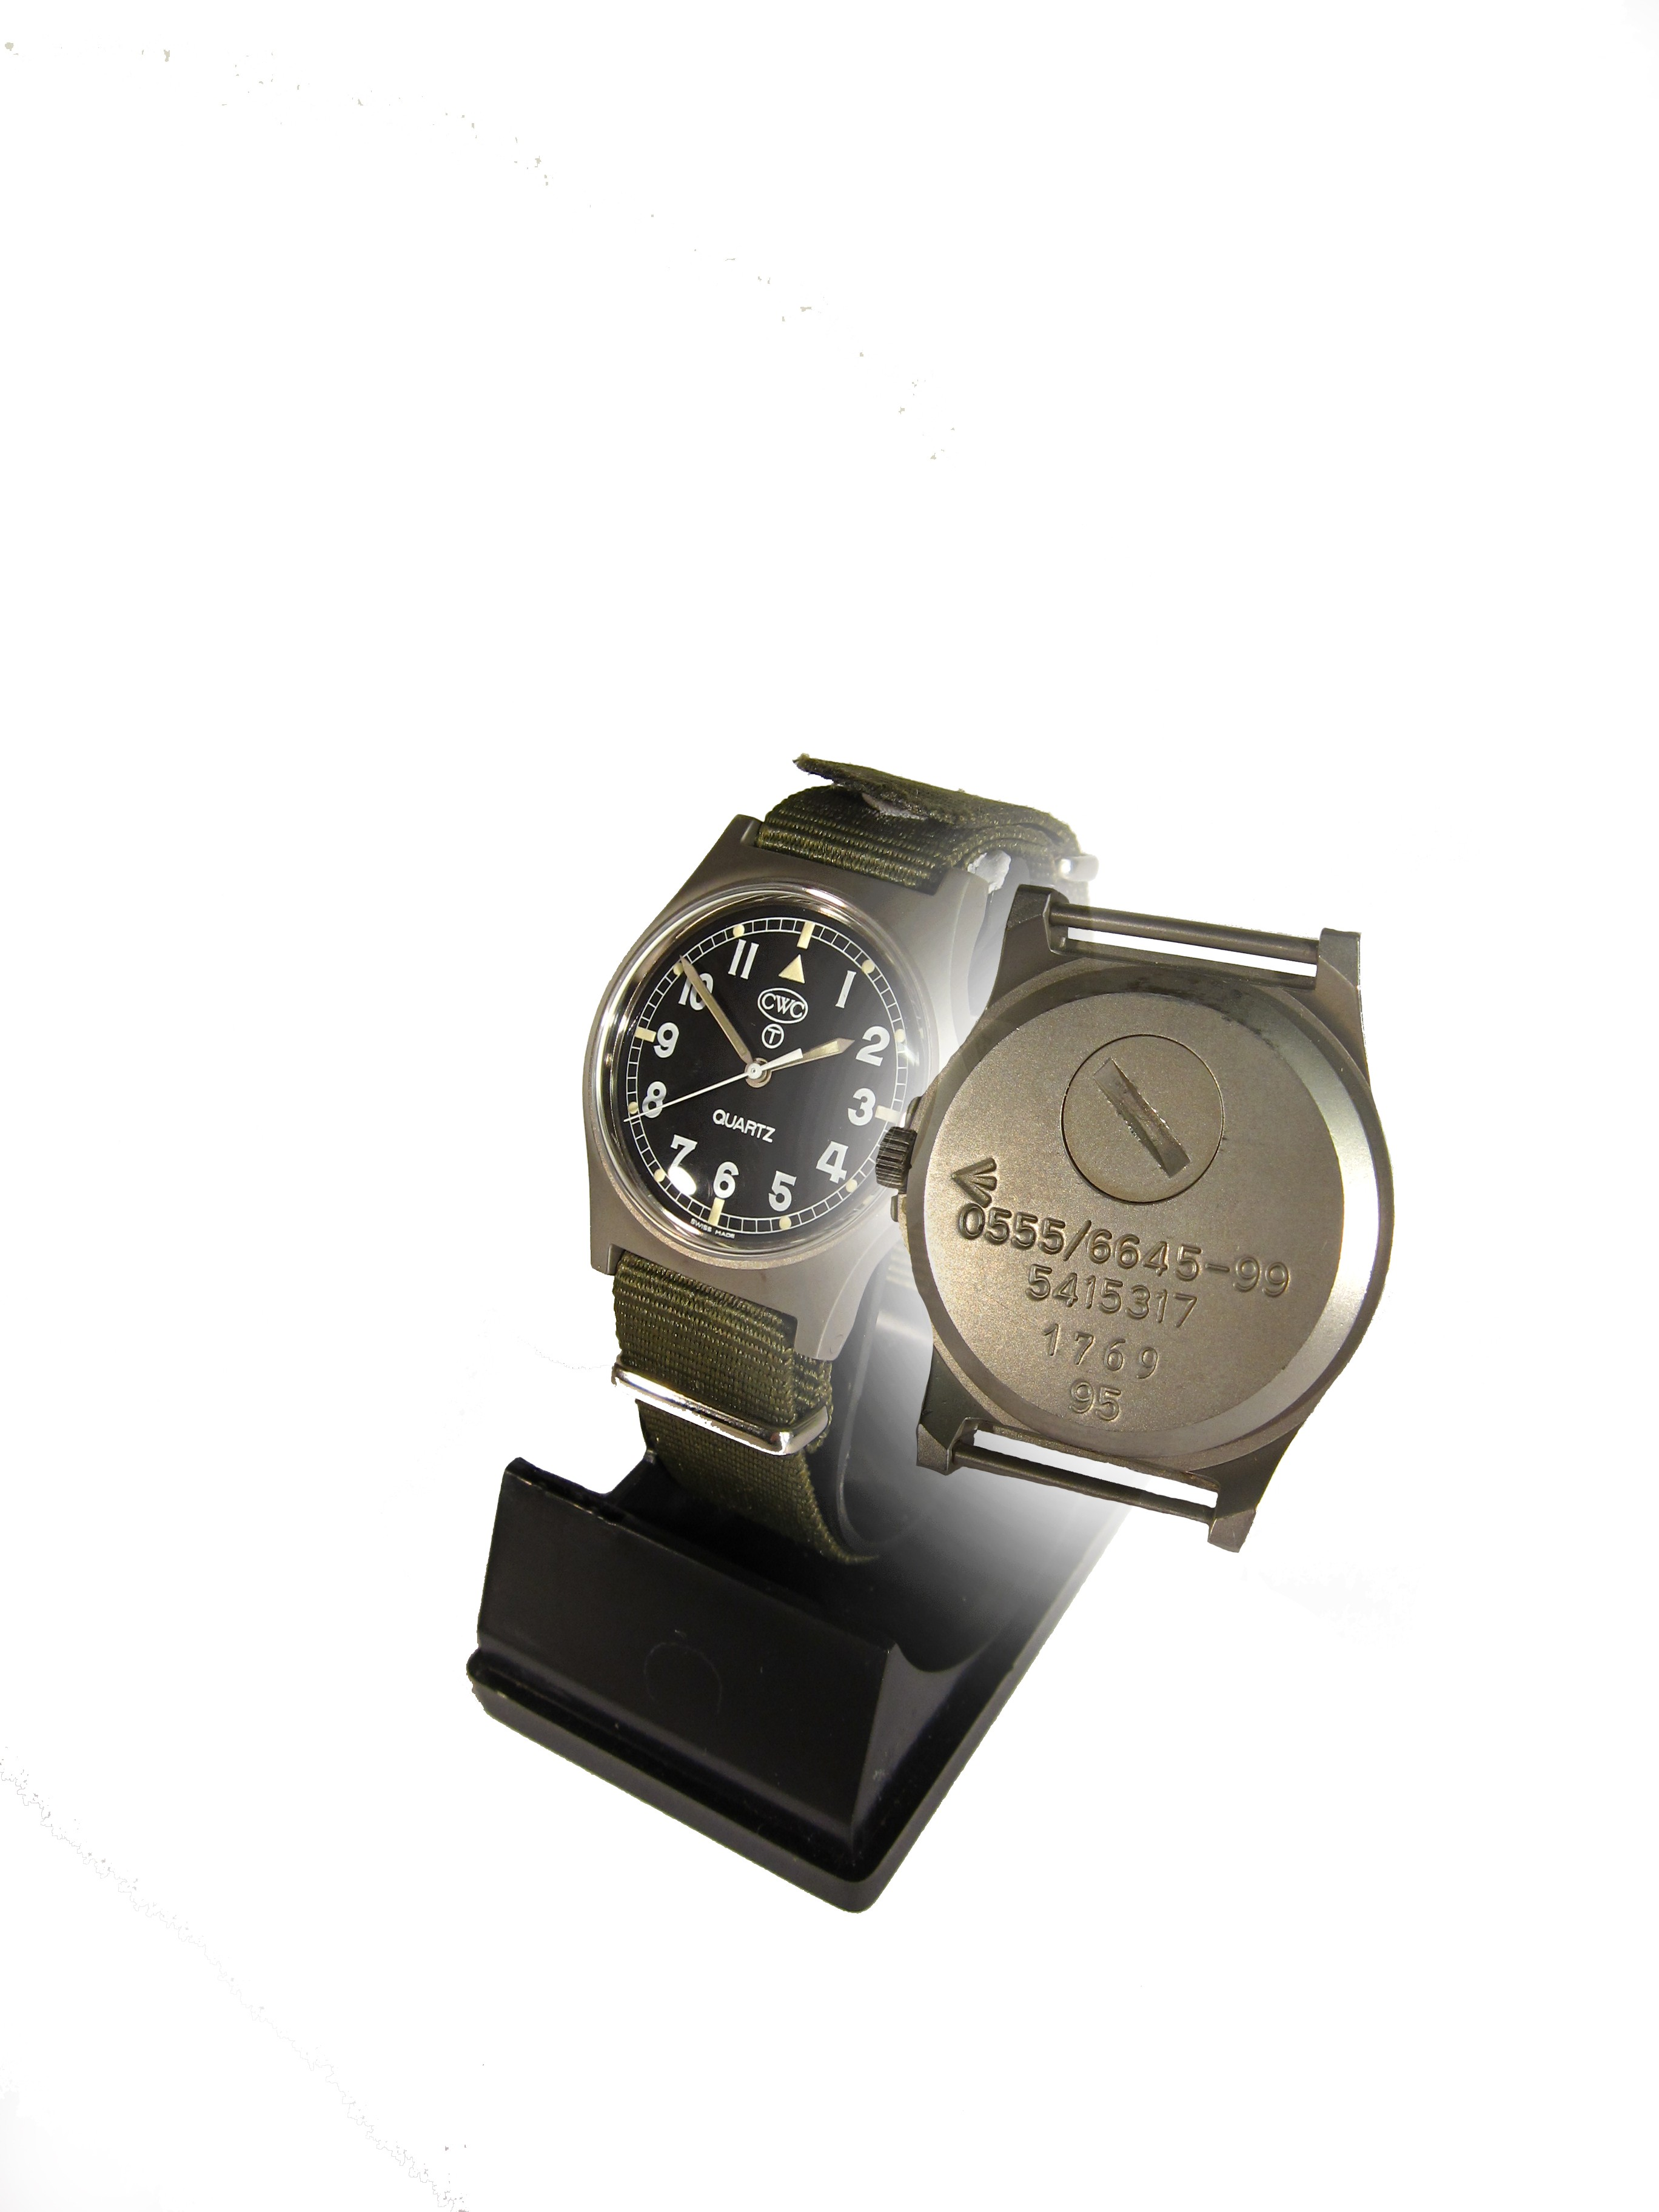 Genuine British Army CWC G10 Watch Quartz